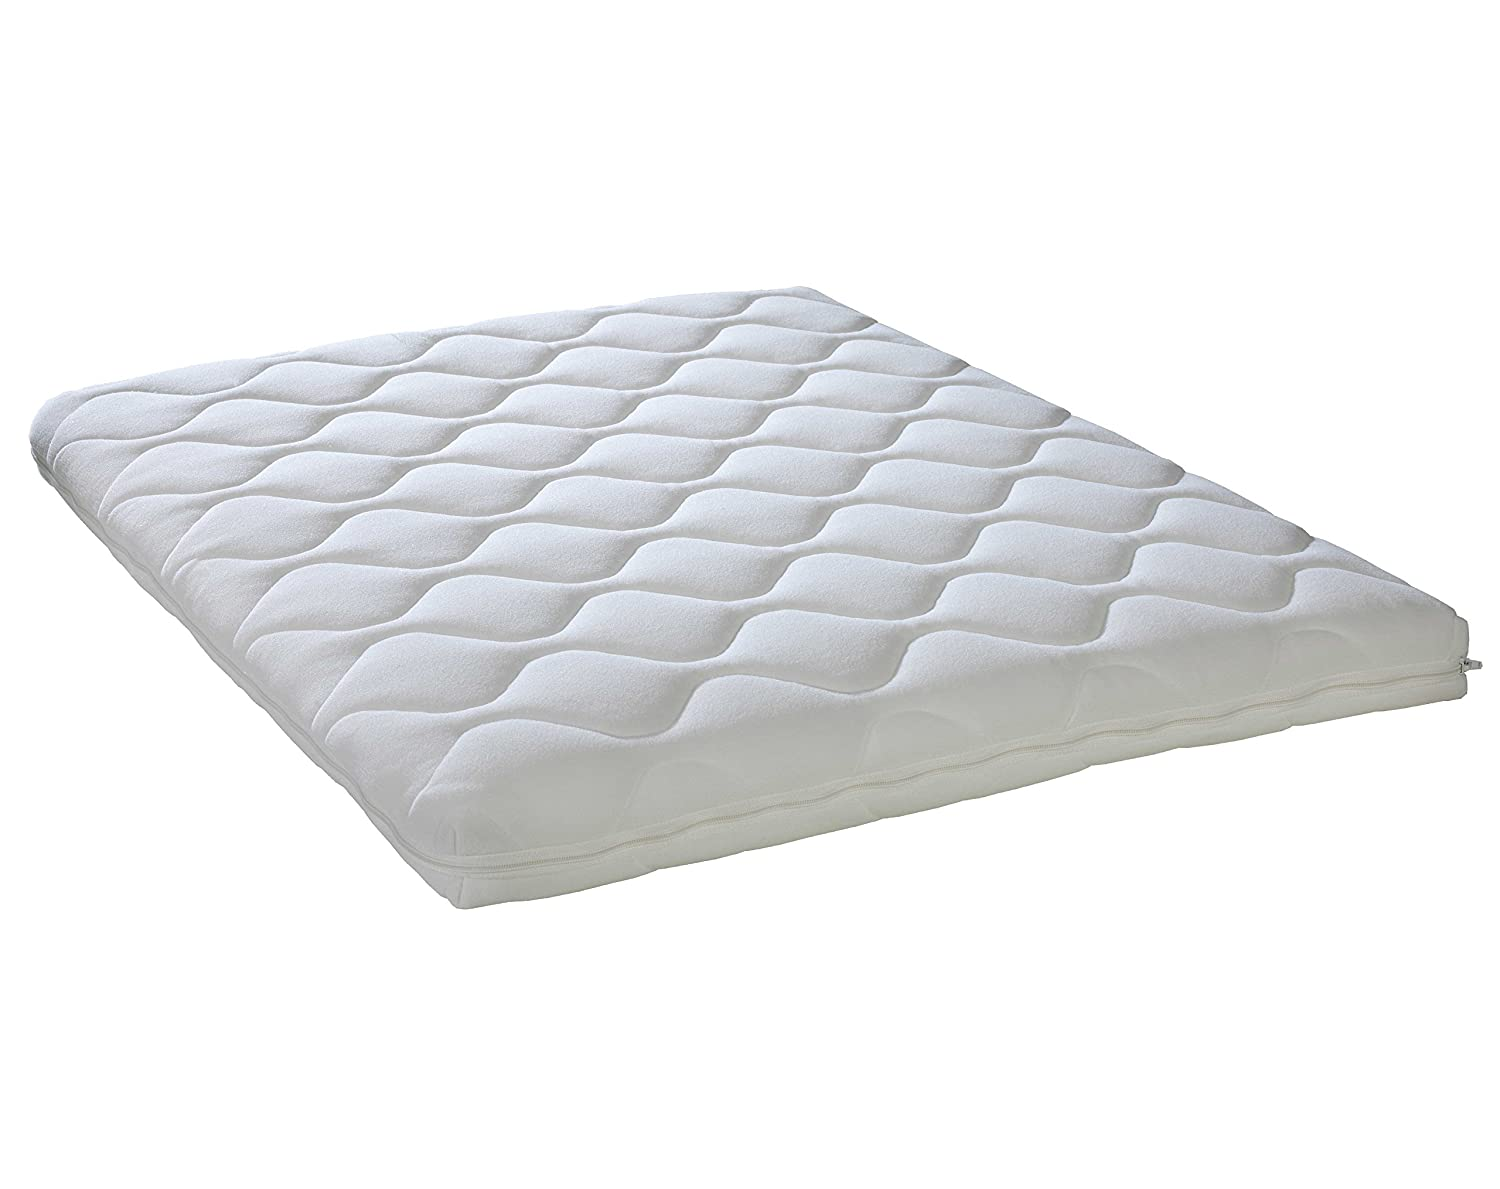 duvatex Pure Clean Vacuum Playpen Mattress 93 x 73 x 7 cm E7PM7 KM42-93737R